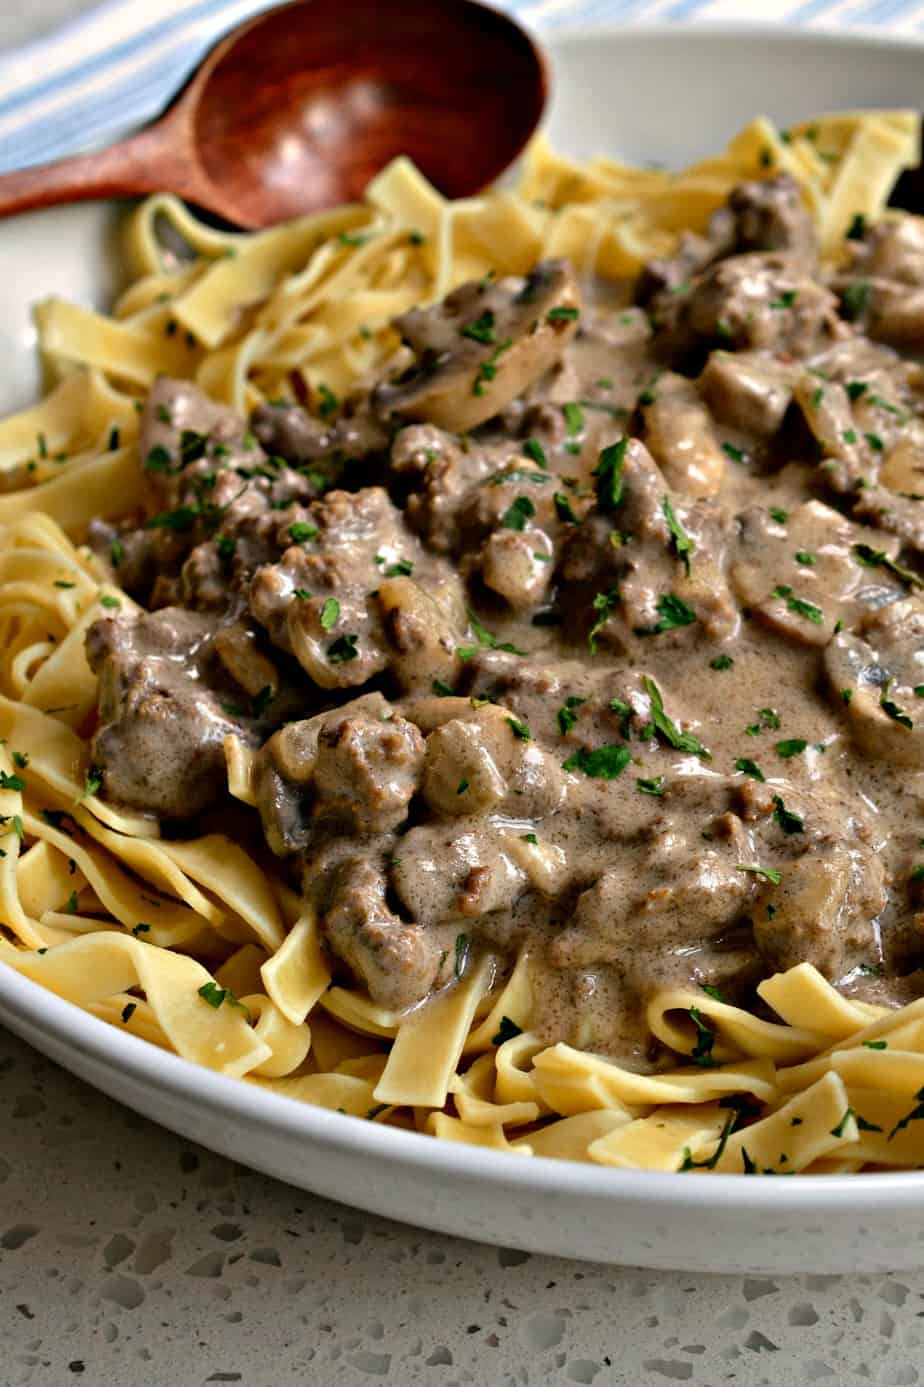 Ground Beef Stroganoff is made with mushrooms, onions, and garlic in a creamy rich gravy.